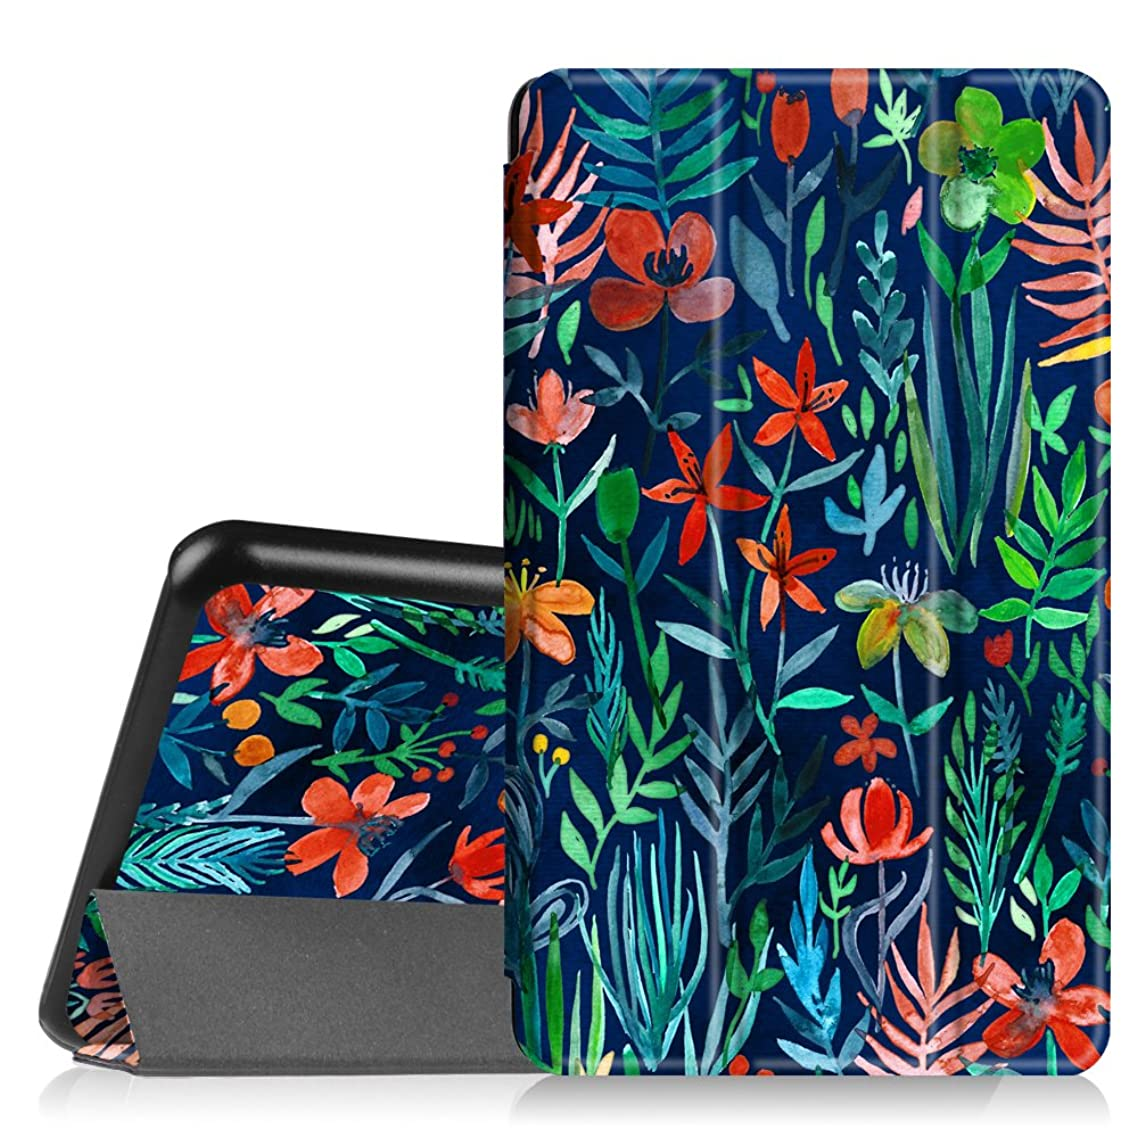 Fintie Slim Shell Case for Samsung Galaxy Tab A 7.0 - Ultra Lightweight Protective Stand Cover for Samsung Galaxy Tab A 7-inch Tablet 2016 Release (SM-T280/SM-T285), Jungle Night